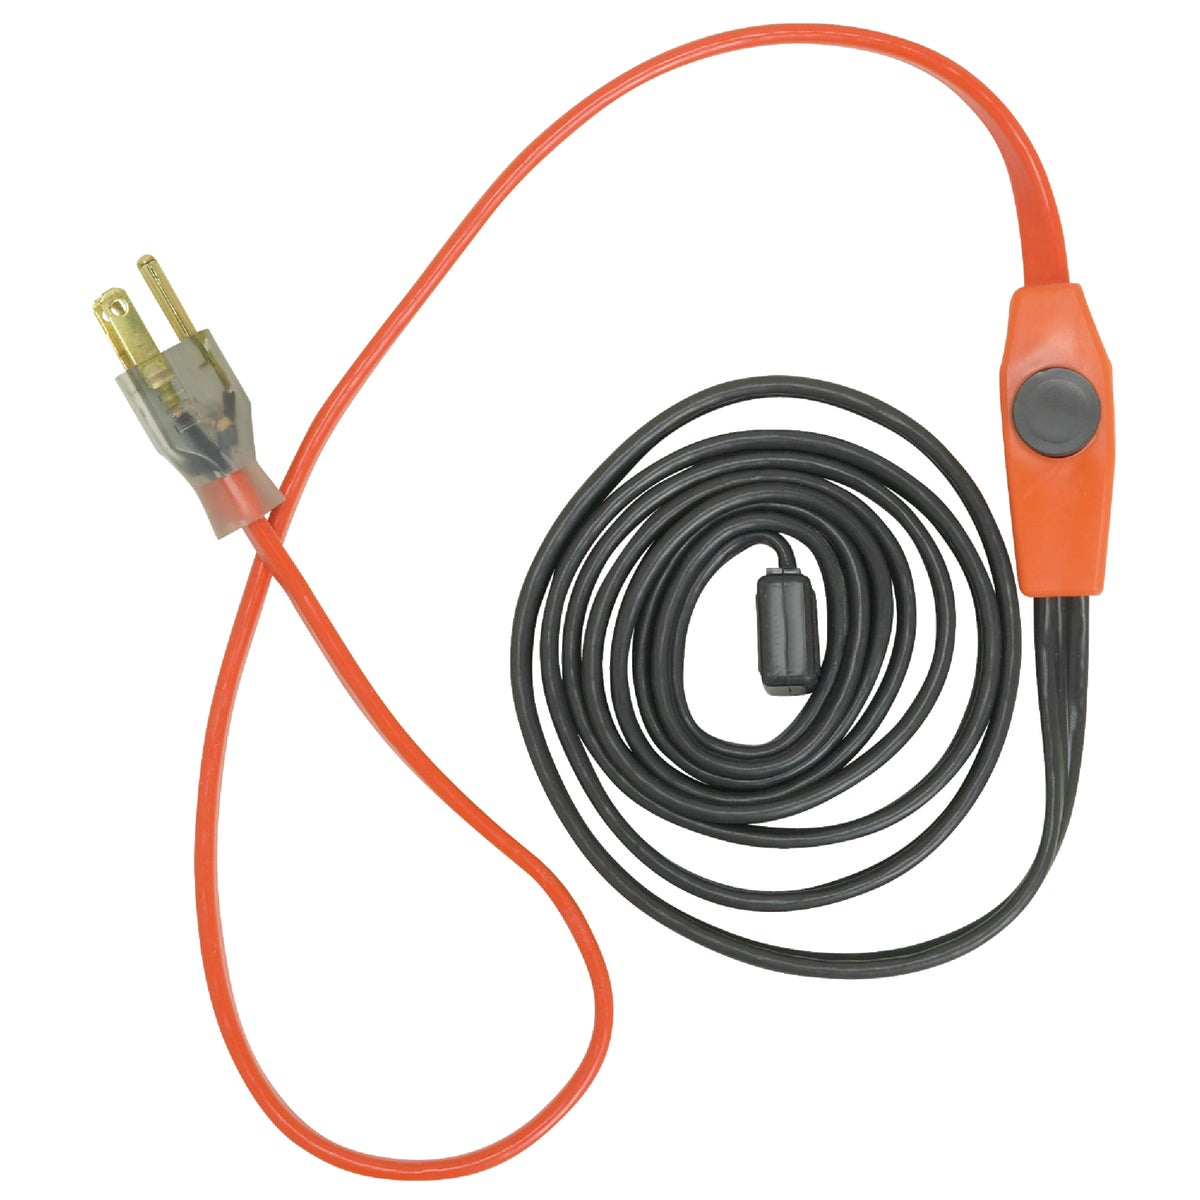 30' PIPE HEATING CABLE - AHB130 by Easy Heat Inc